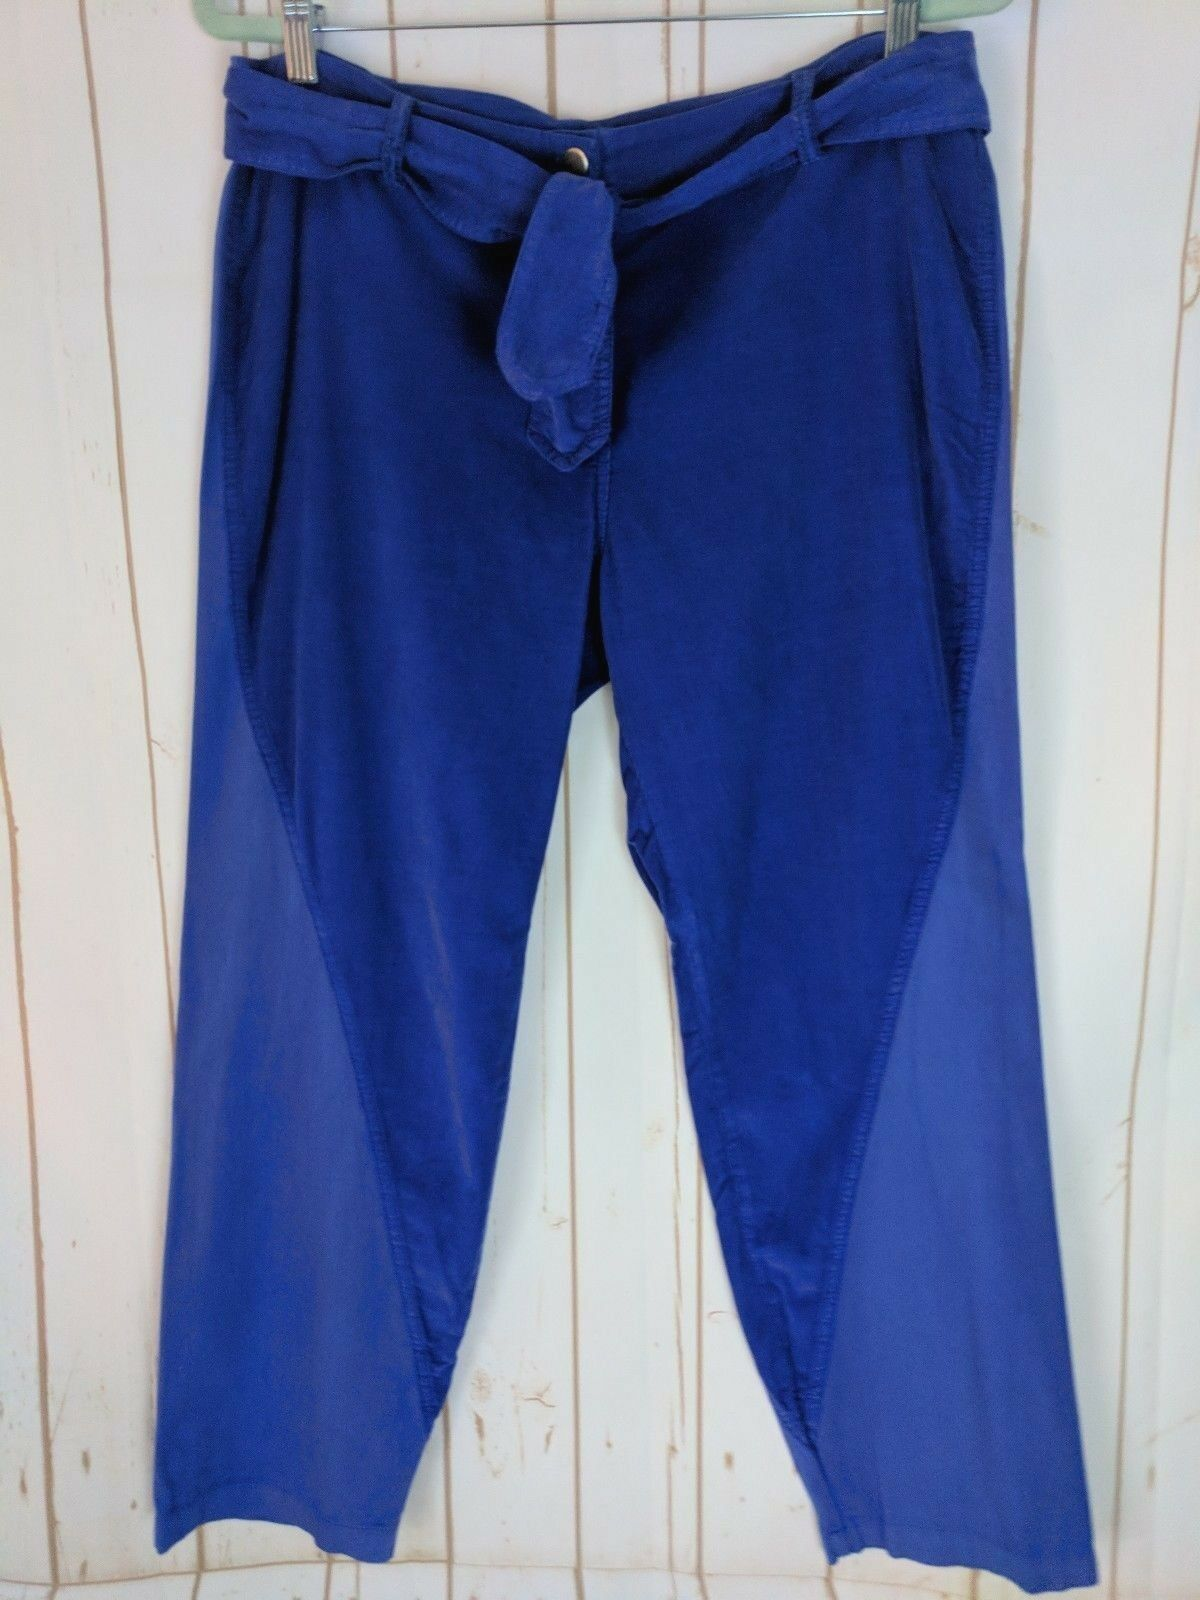 Monrow Pants M Royal bluee Cotton Zip Tie Waist Thin Partial Corduroy Seam Design